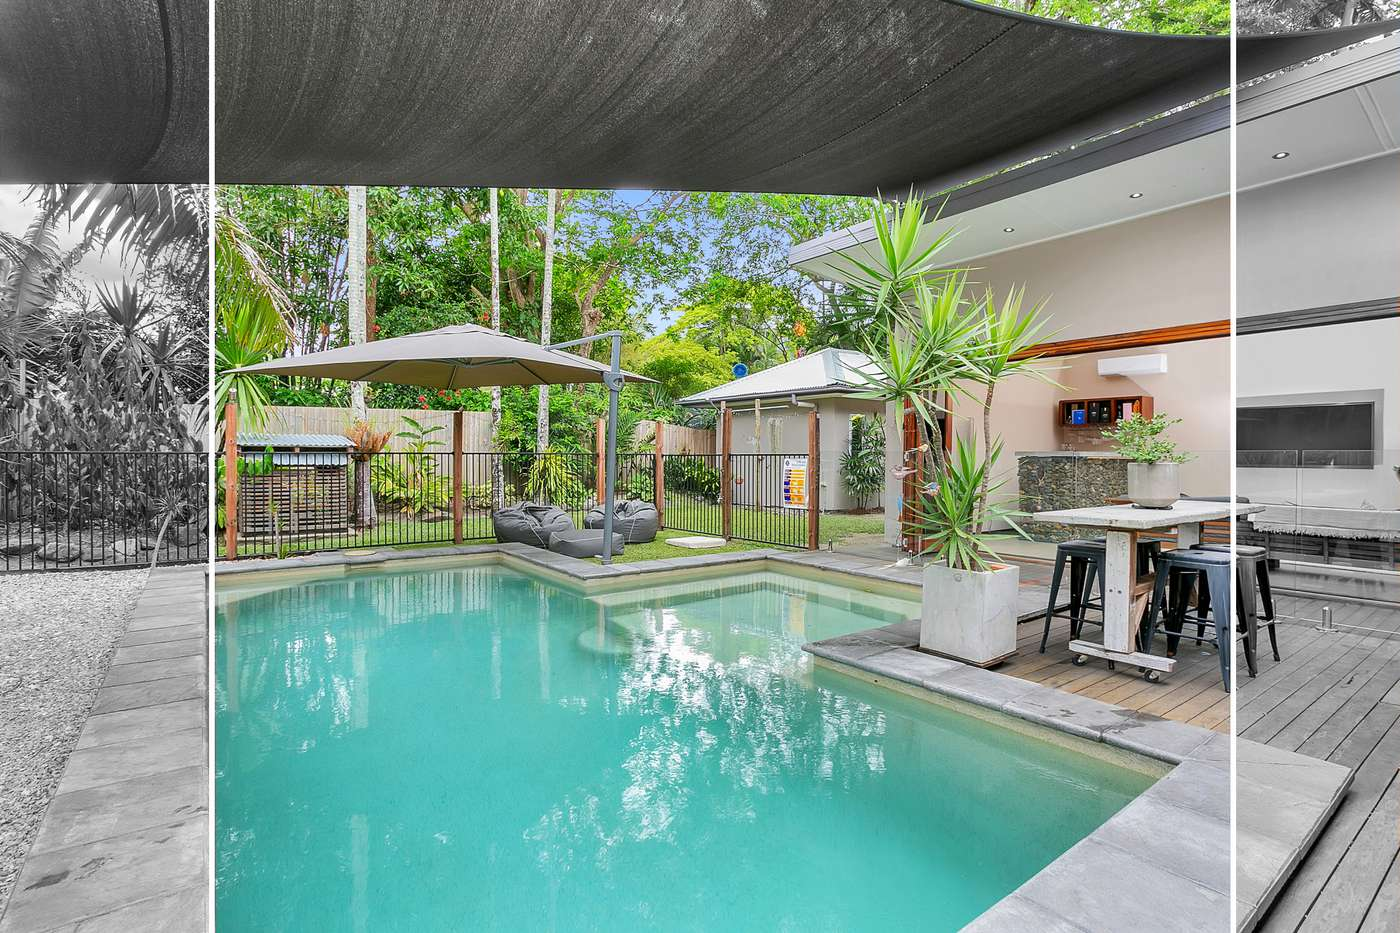 Main view of Homely house listing, 24 Hudson Street, Whitfield, QLD 4870